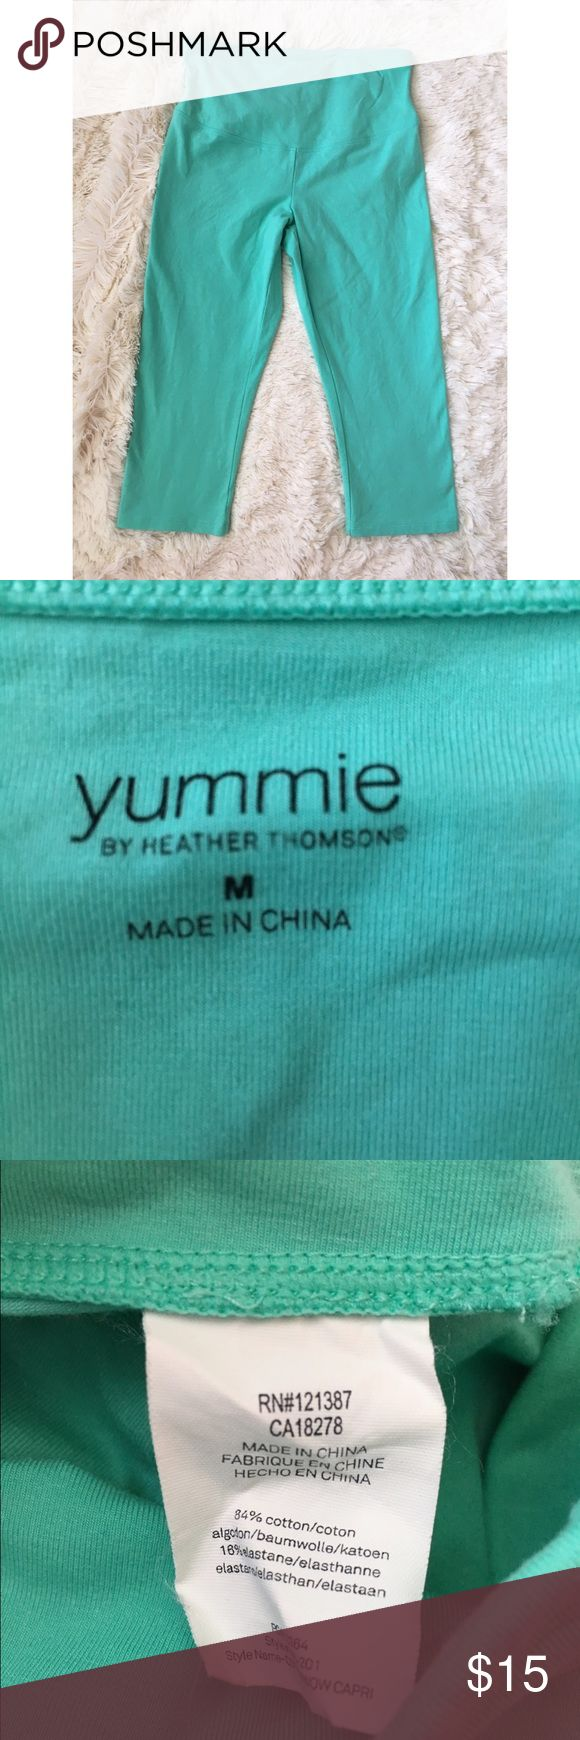 """Yummie by Heather Thomson slimming capri Yummie by Heather Thomson --the WOW slimming hi rise Capri. Perfect for your workout or just casually running errands! Cotton and elastane blend. VGUC! Mint green color. 16"""" inseam. Size Medium. Yummie by Heather Thomson Pants Capris"""